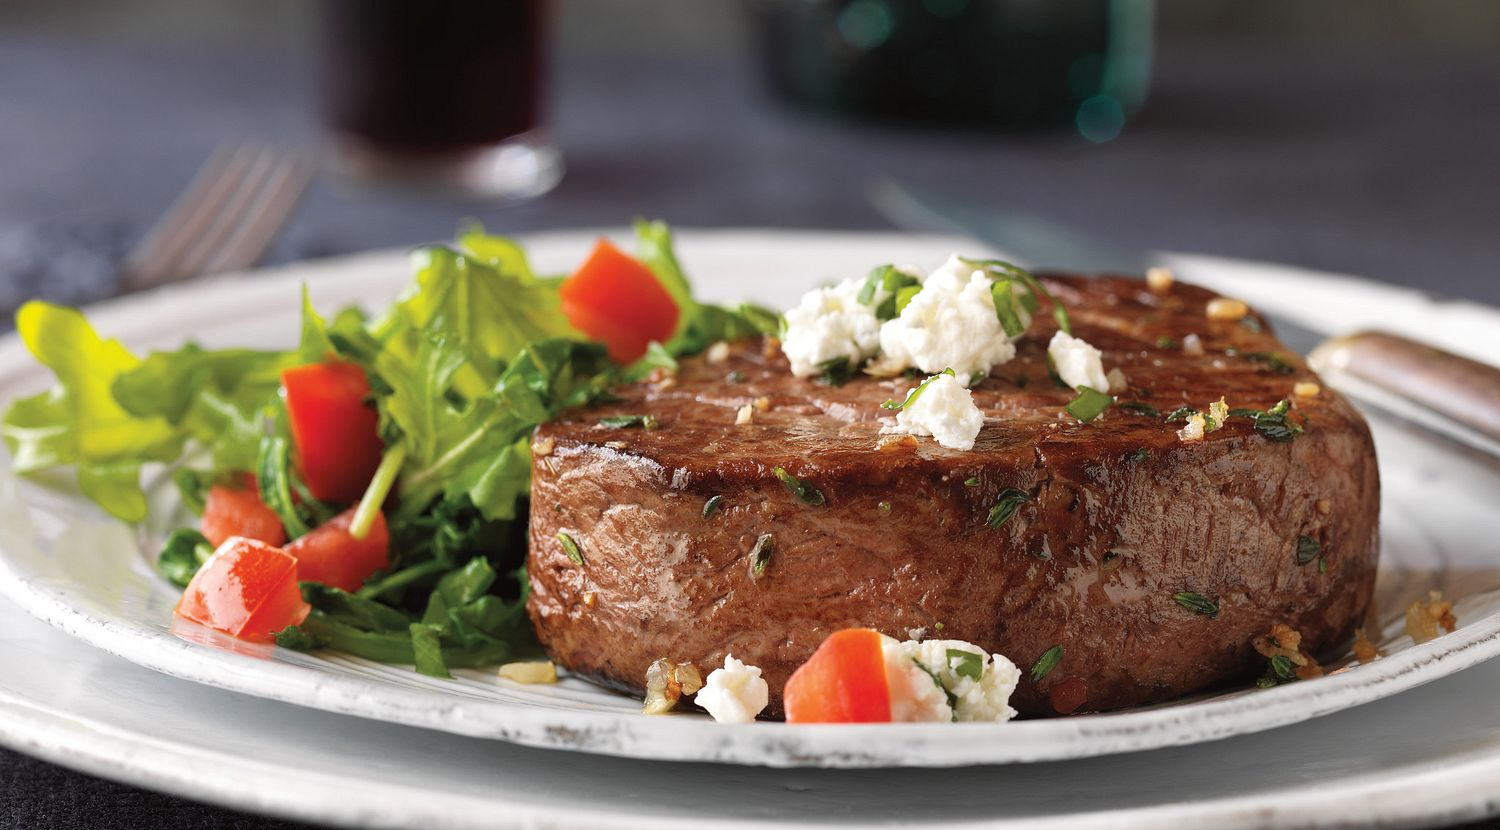 Herbed Tenderloin Steaks with Goat Cheese Topping